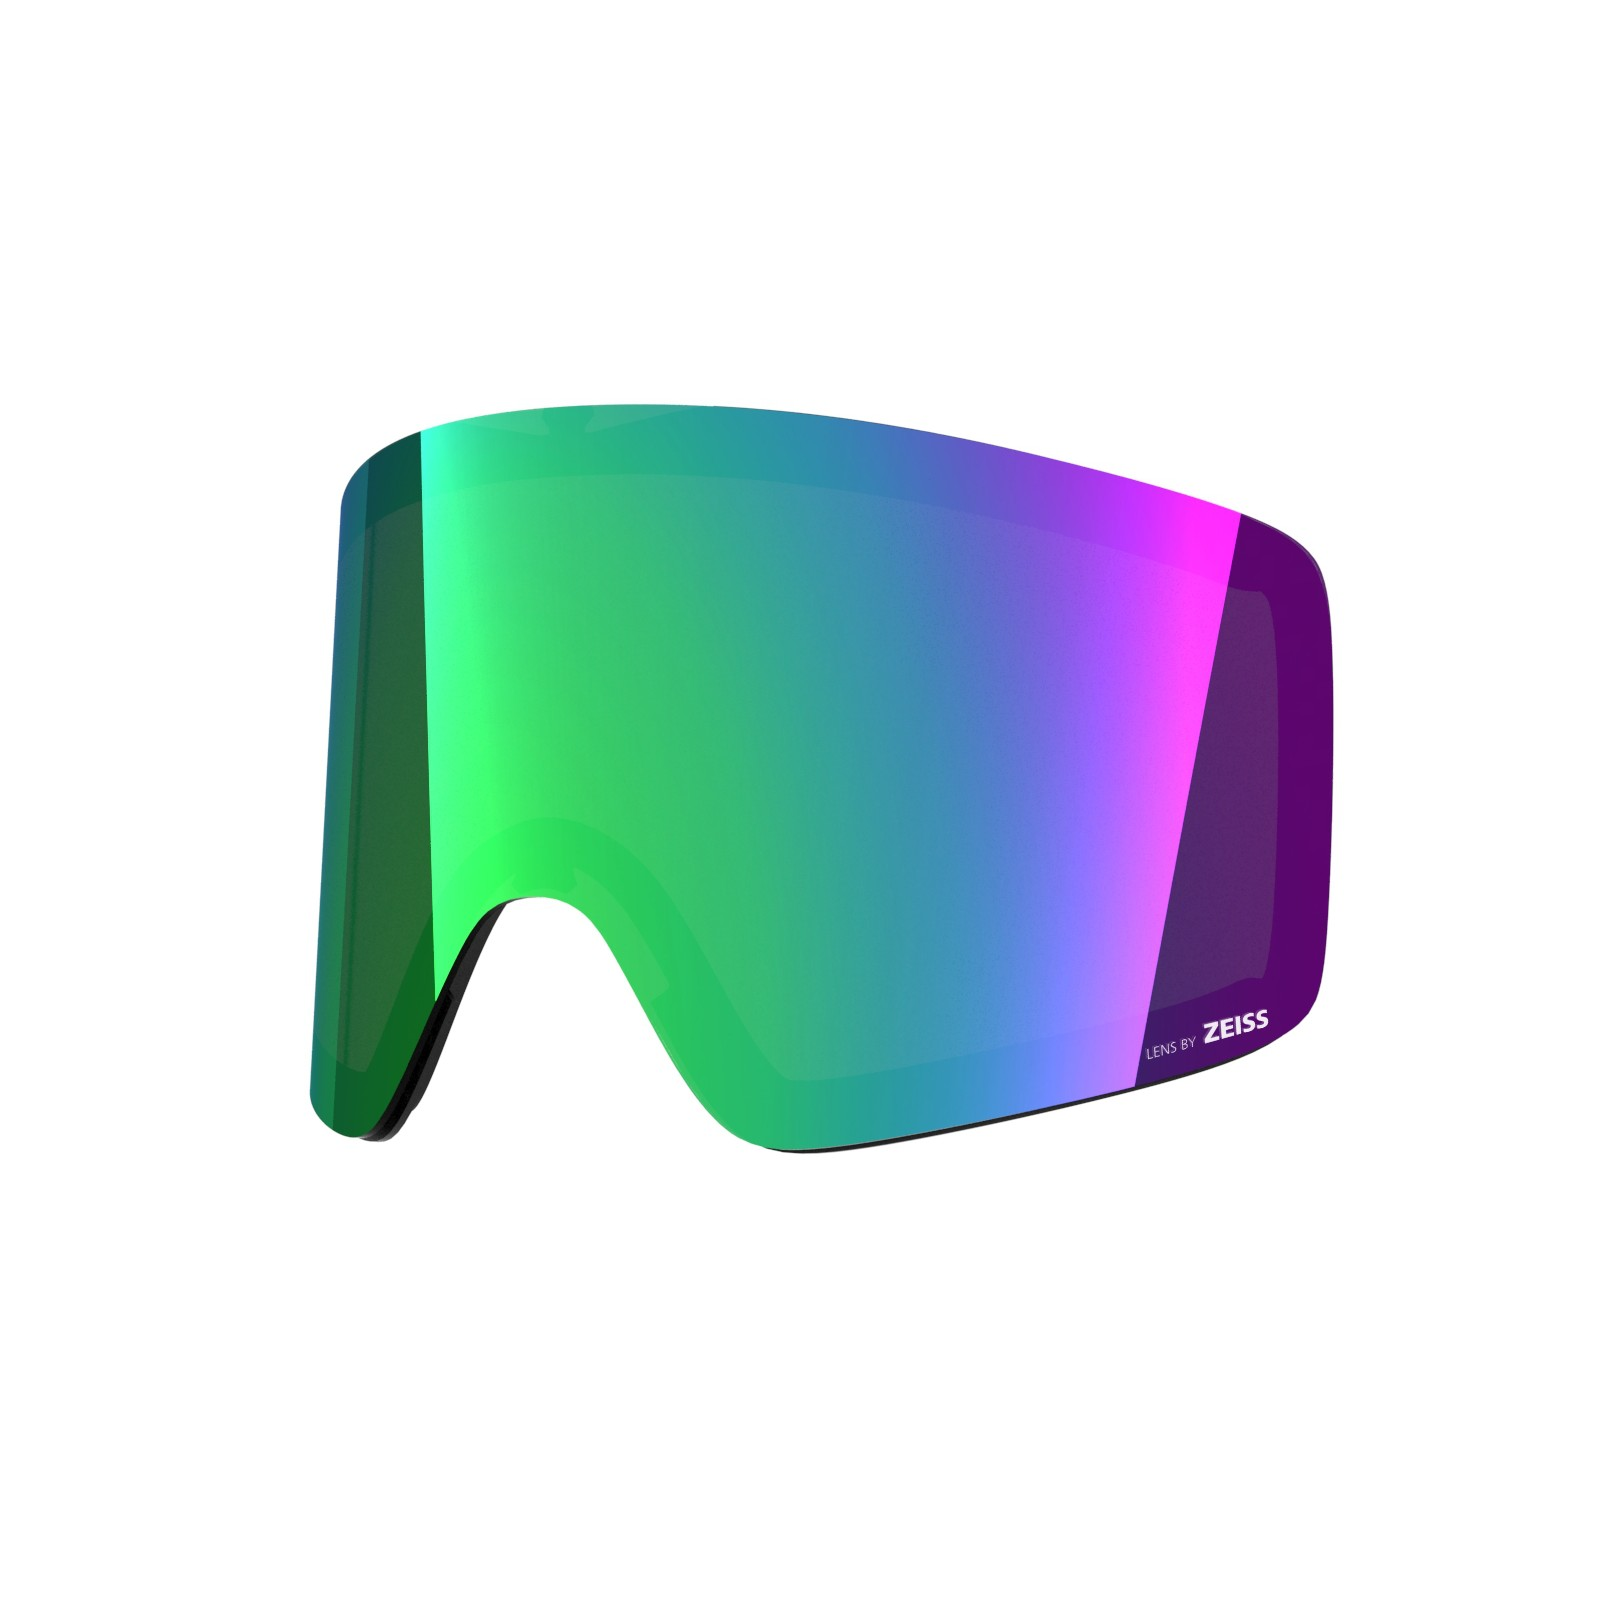 Green MCI lens for  Void goggle